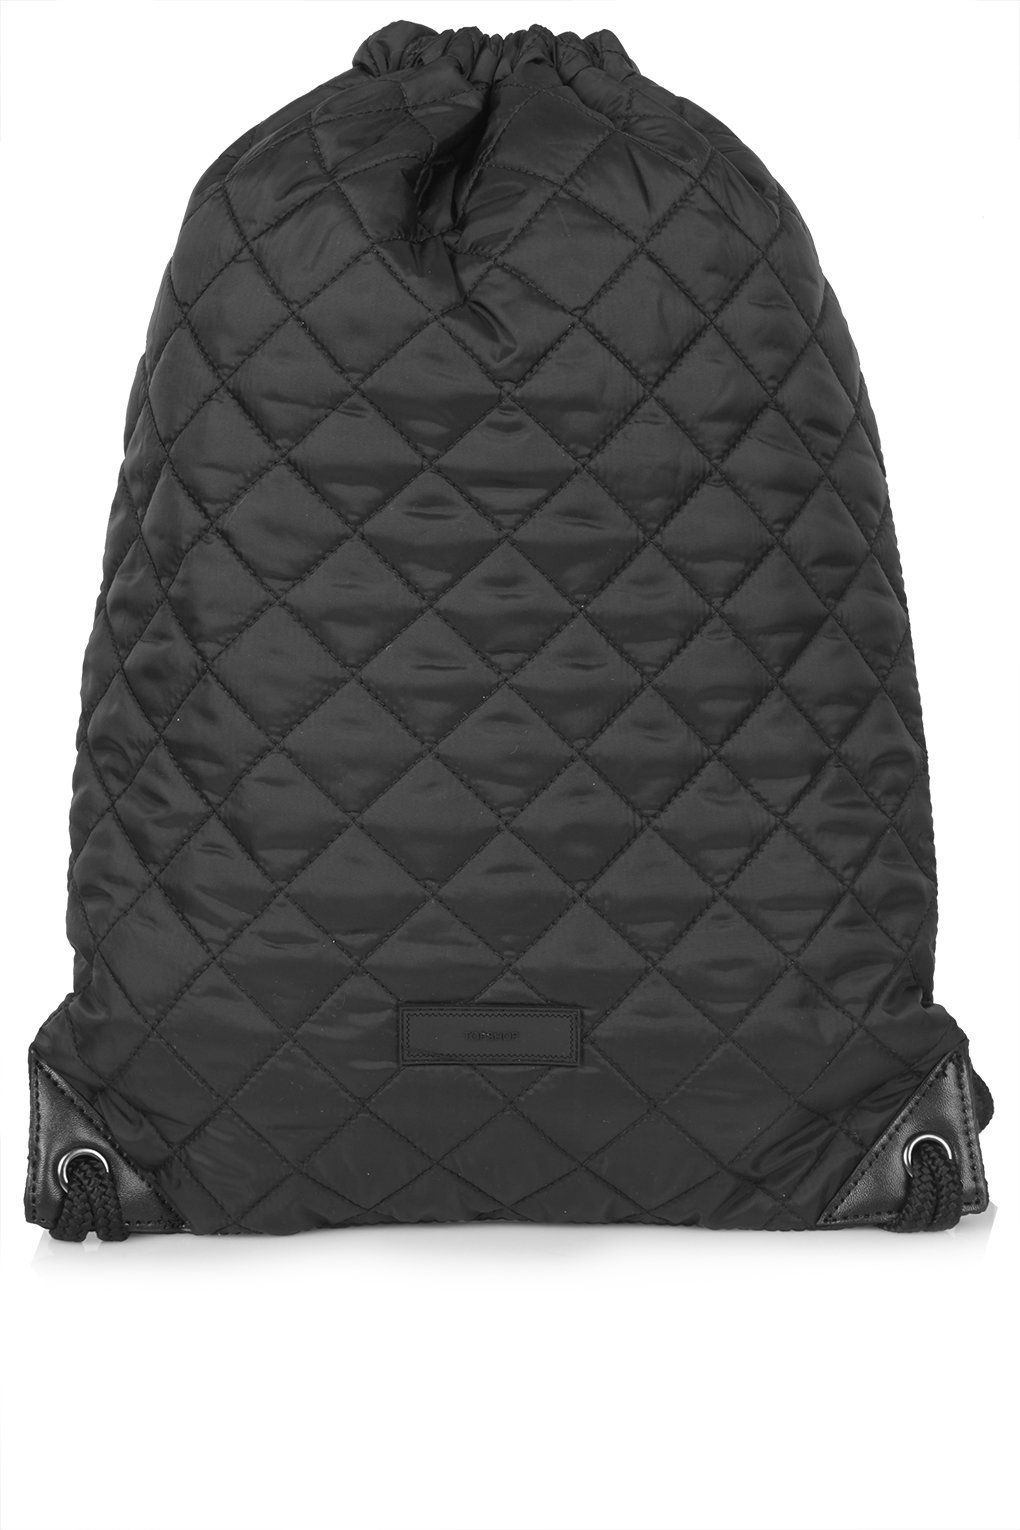 Quilted Drawstring Backpack - Bags & Purses - Bags & Accessories ...